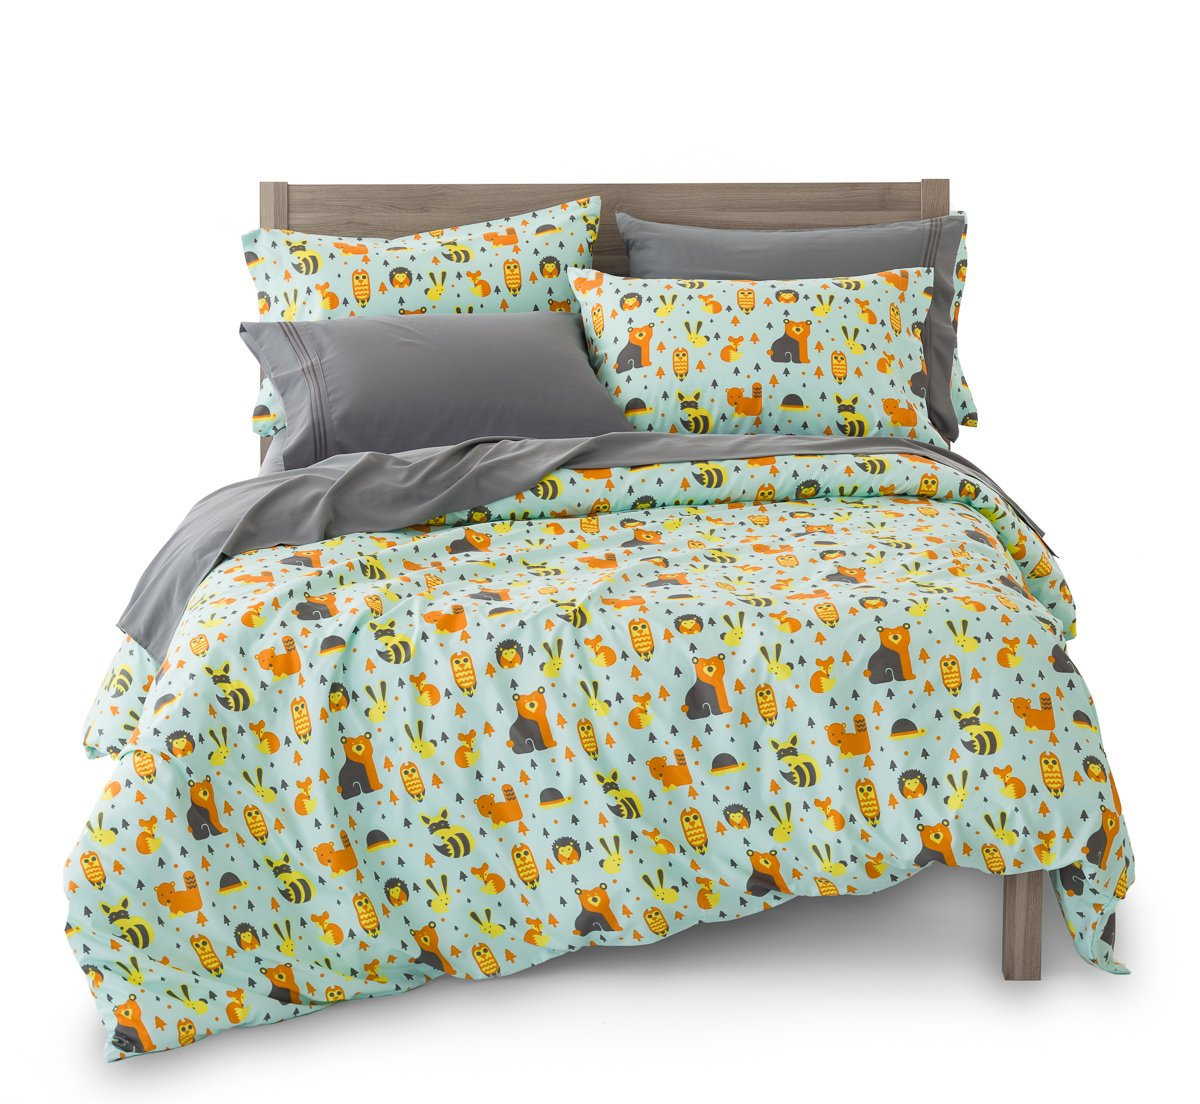 Full/Queen Woodland Creatures Duvet Cover Set with 2 Pillowcases for Kids Bedding - Double Brushed Ultra Microfiber Luxury Set By Where The Polka Dots Roam (L 90in x W 92in) …